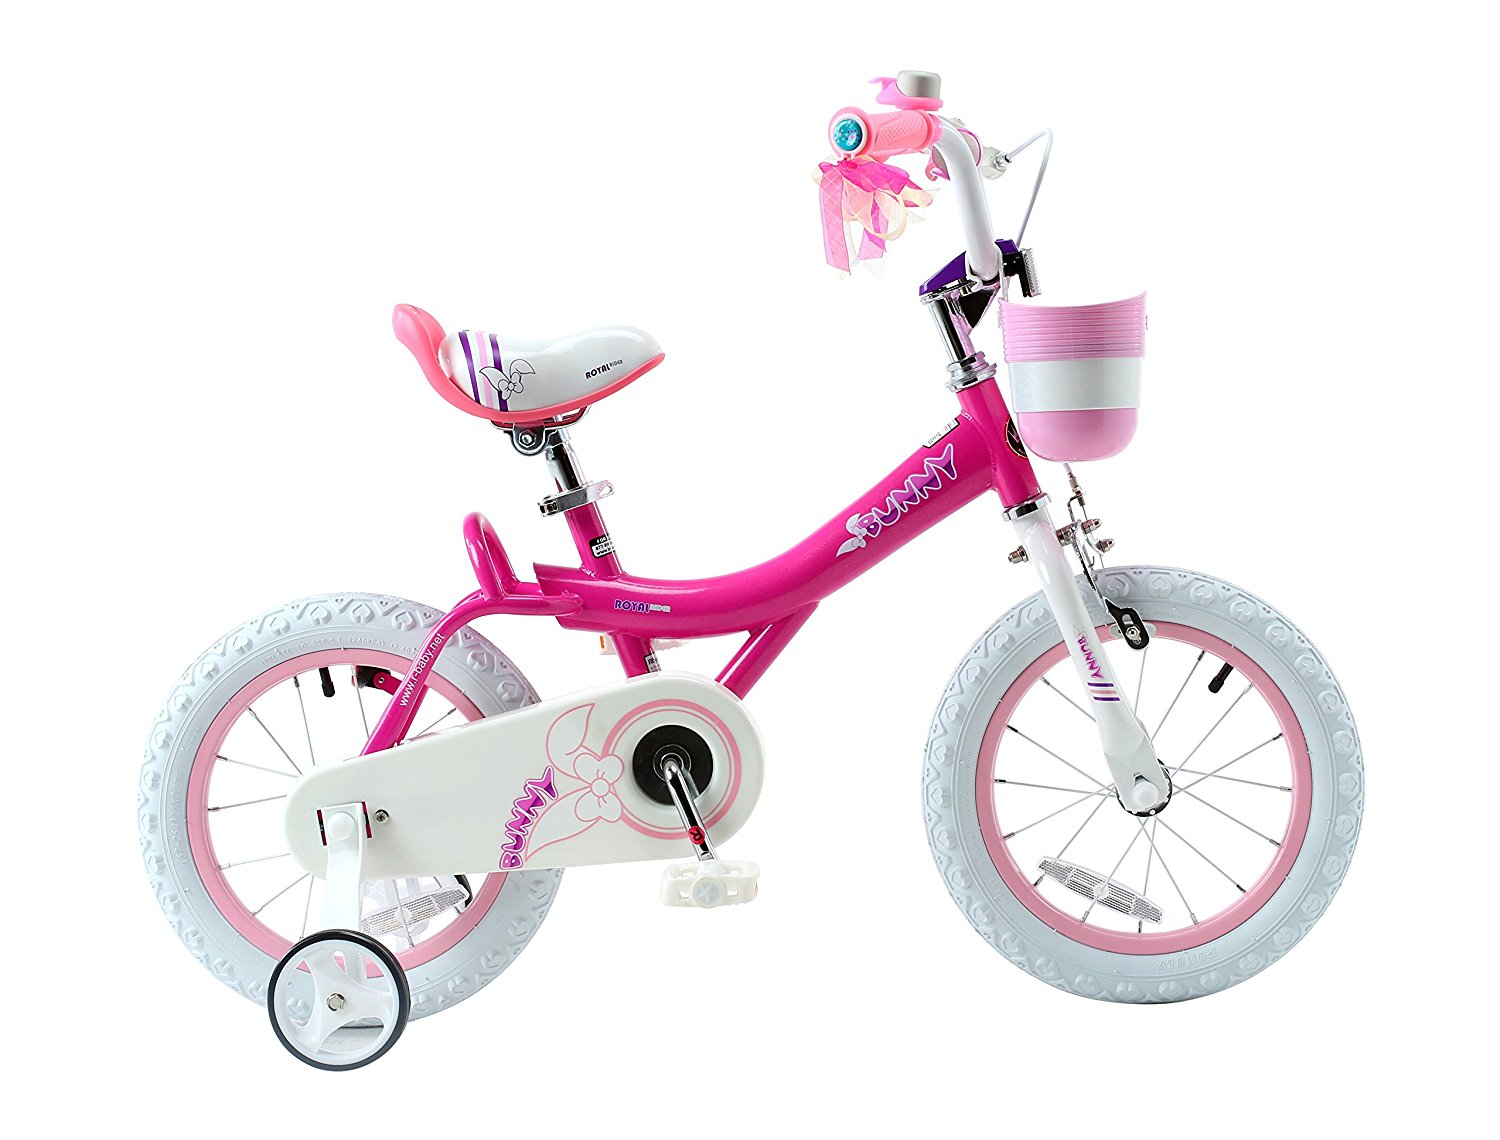 Review of RoyalBaby Jenny & Bunny Girl's Bike with basket